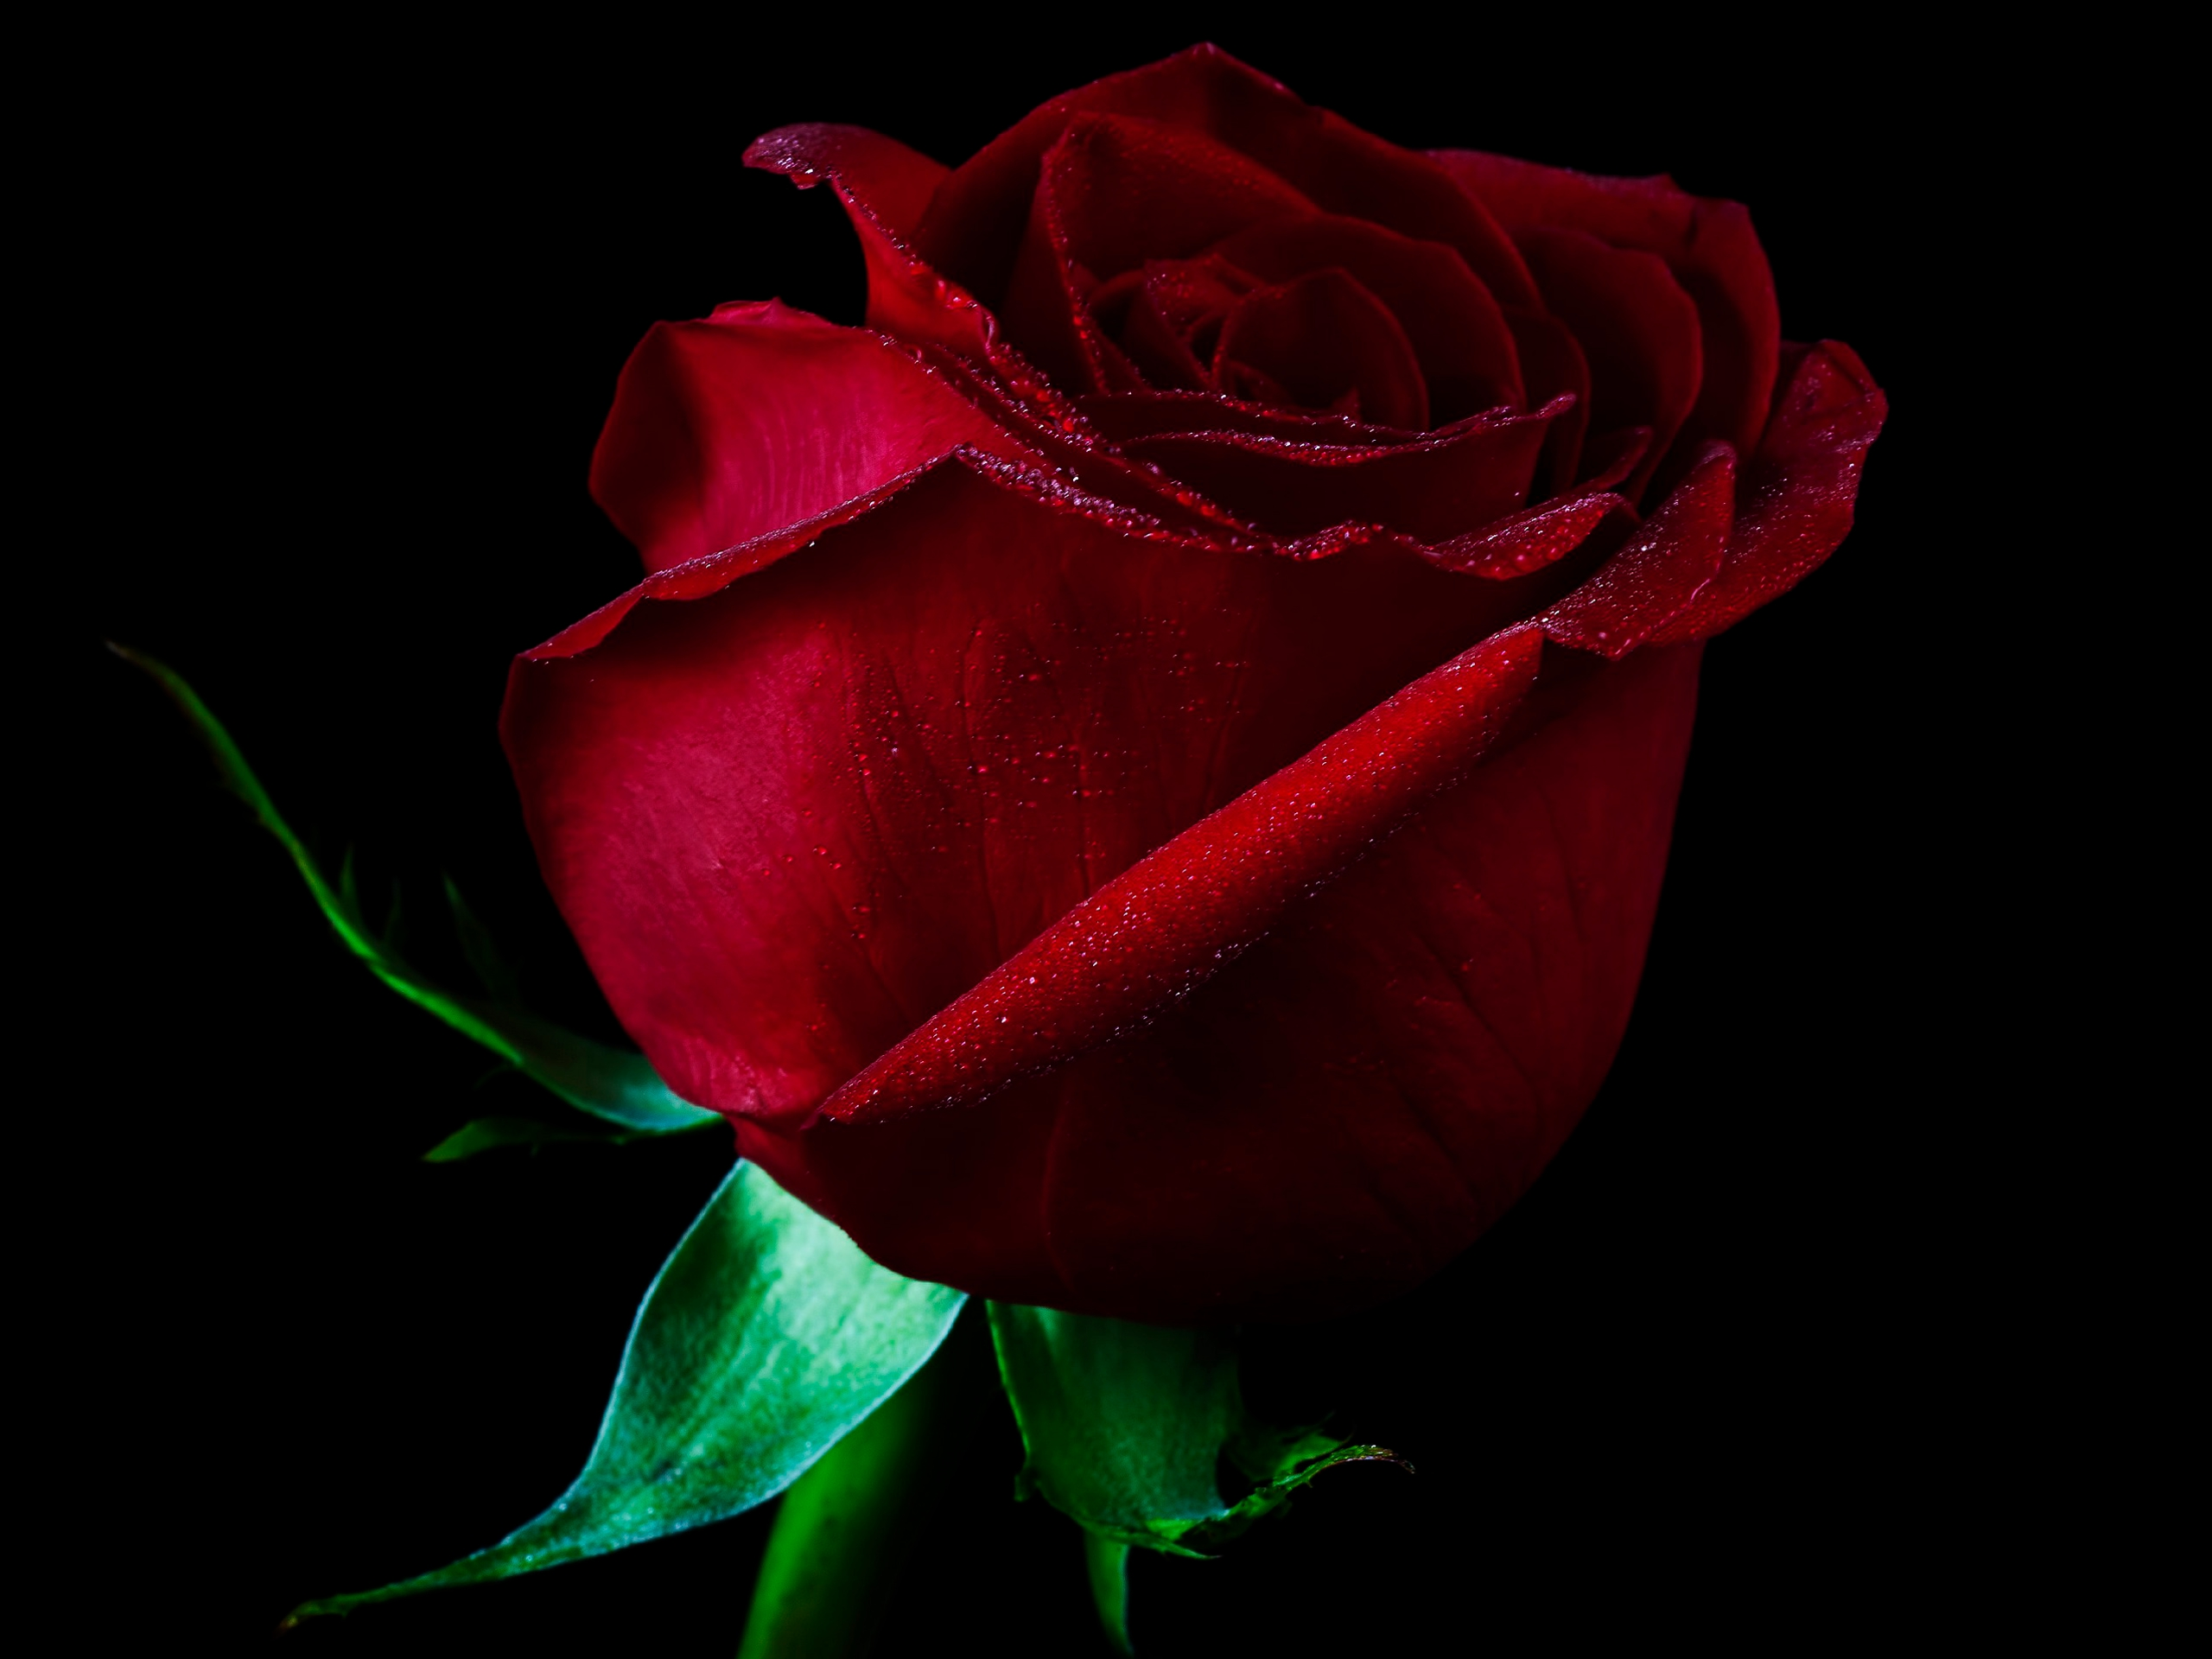 Single Red Rose Flower Stock Images: Single Red Rose Full HD Wallpaper And Background Image